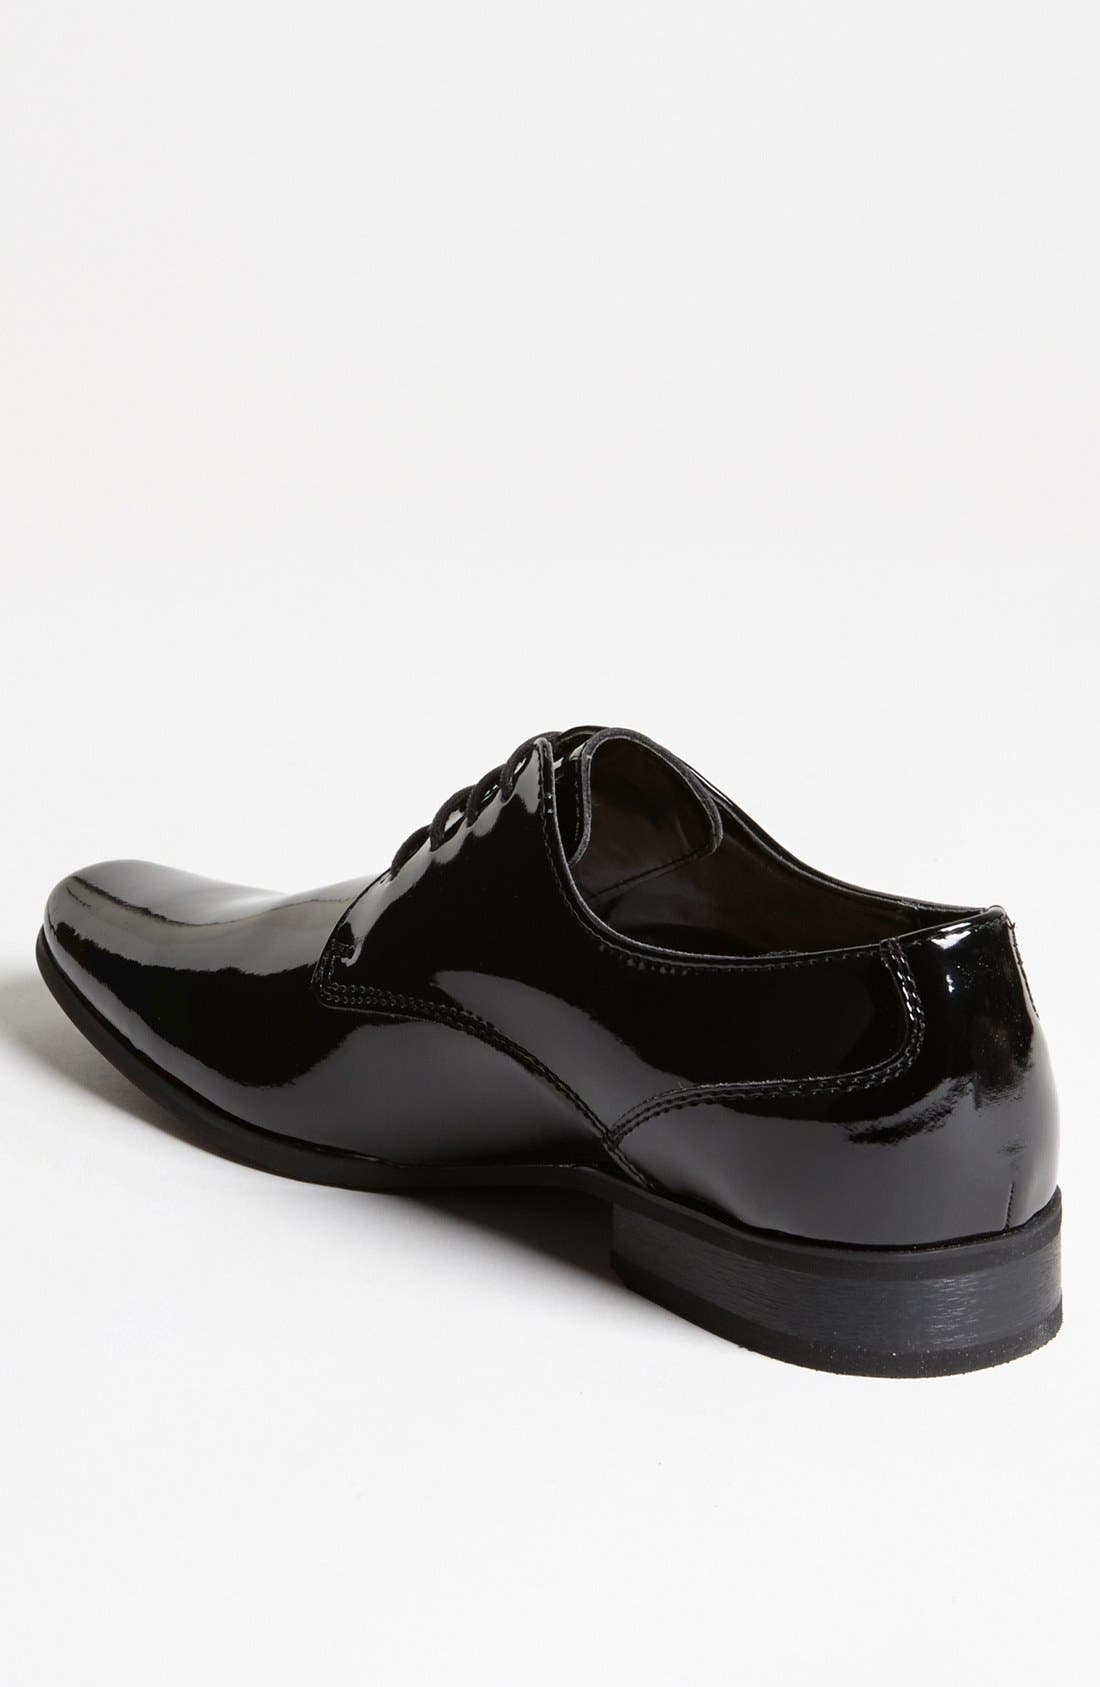 CALVIN KLEIN, 'Brodie' Plain Toe Derby, Alternate thumbnail 2, color, BLACK PATENT